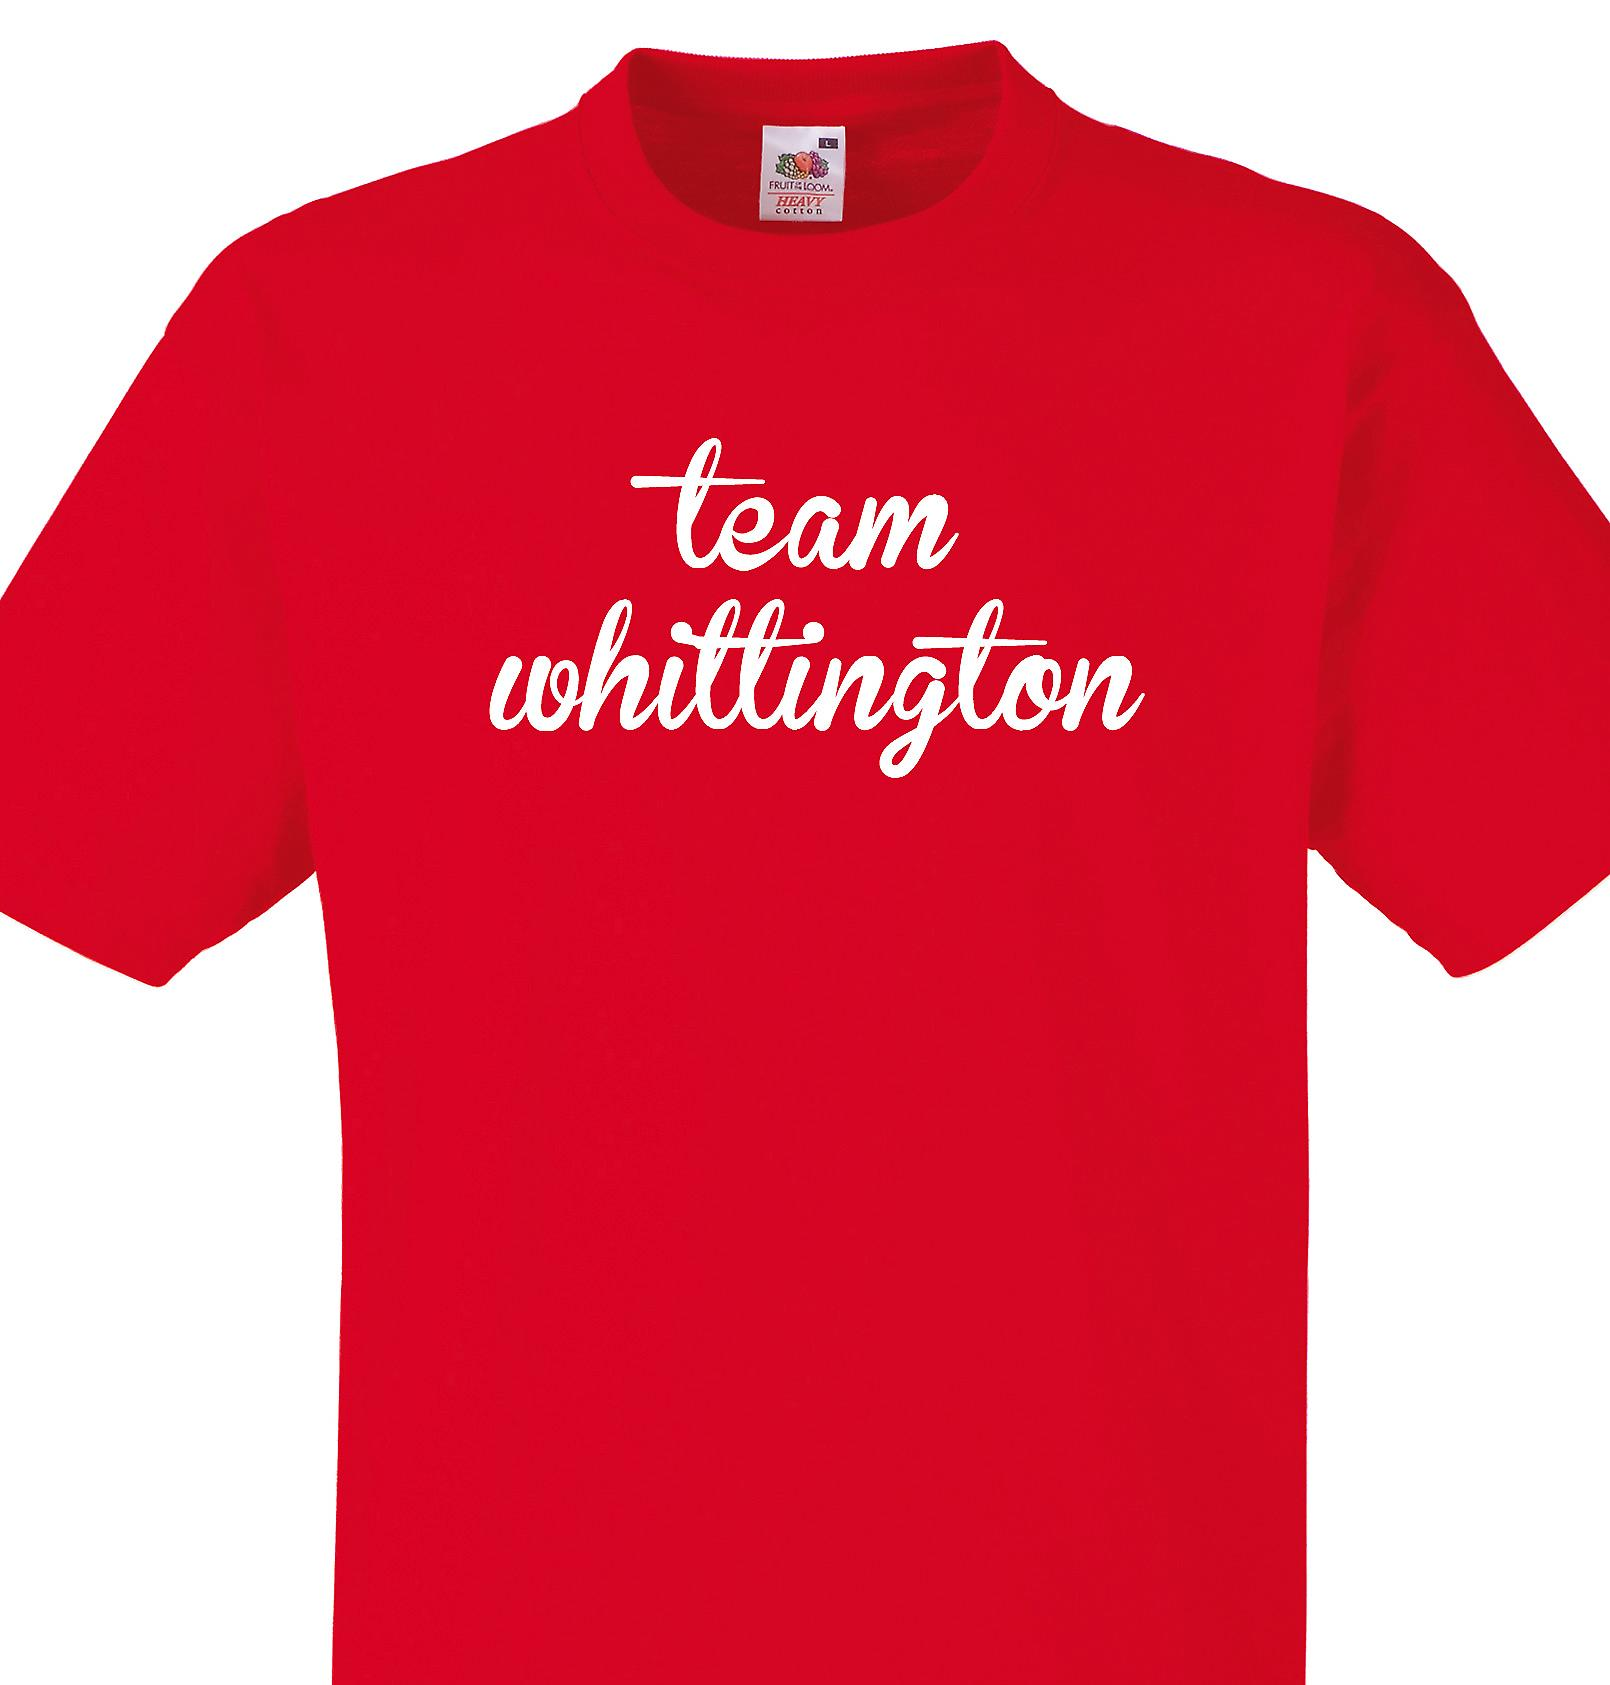 Team Whittington Red T shirt